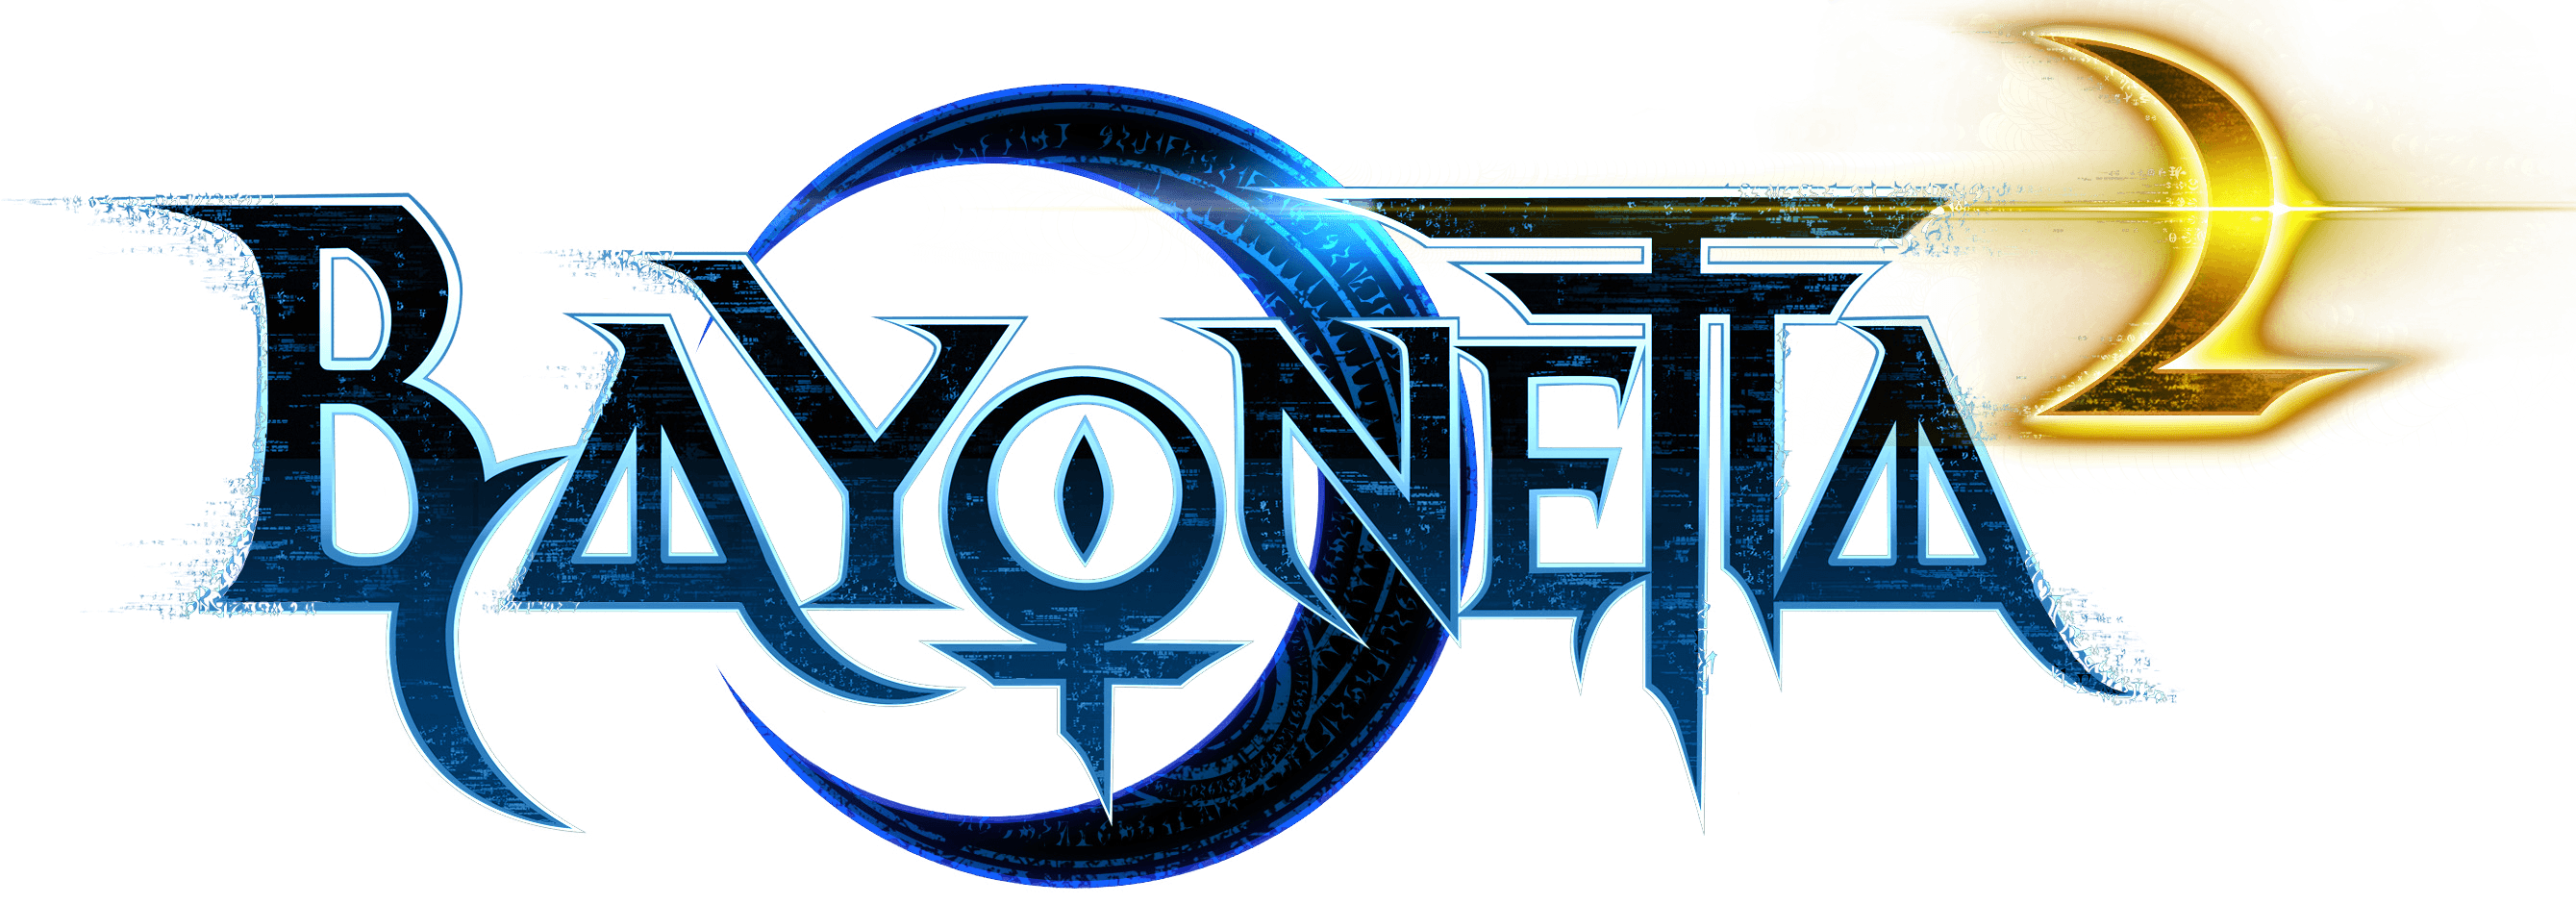 E3 2014 Must Buy: Bayonetta 2